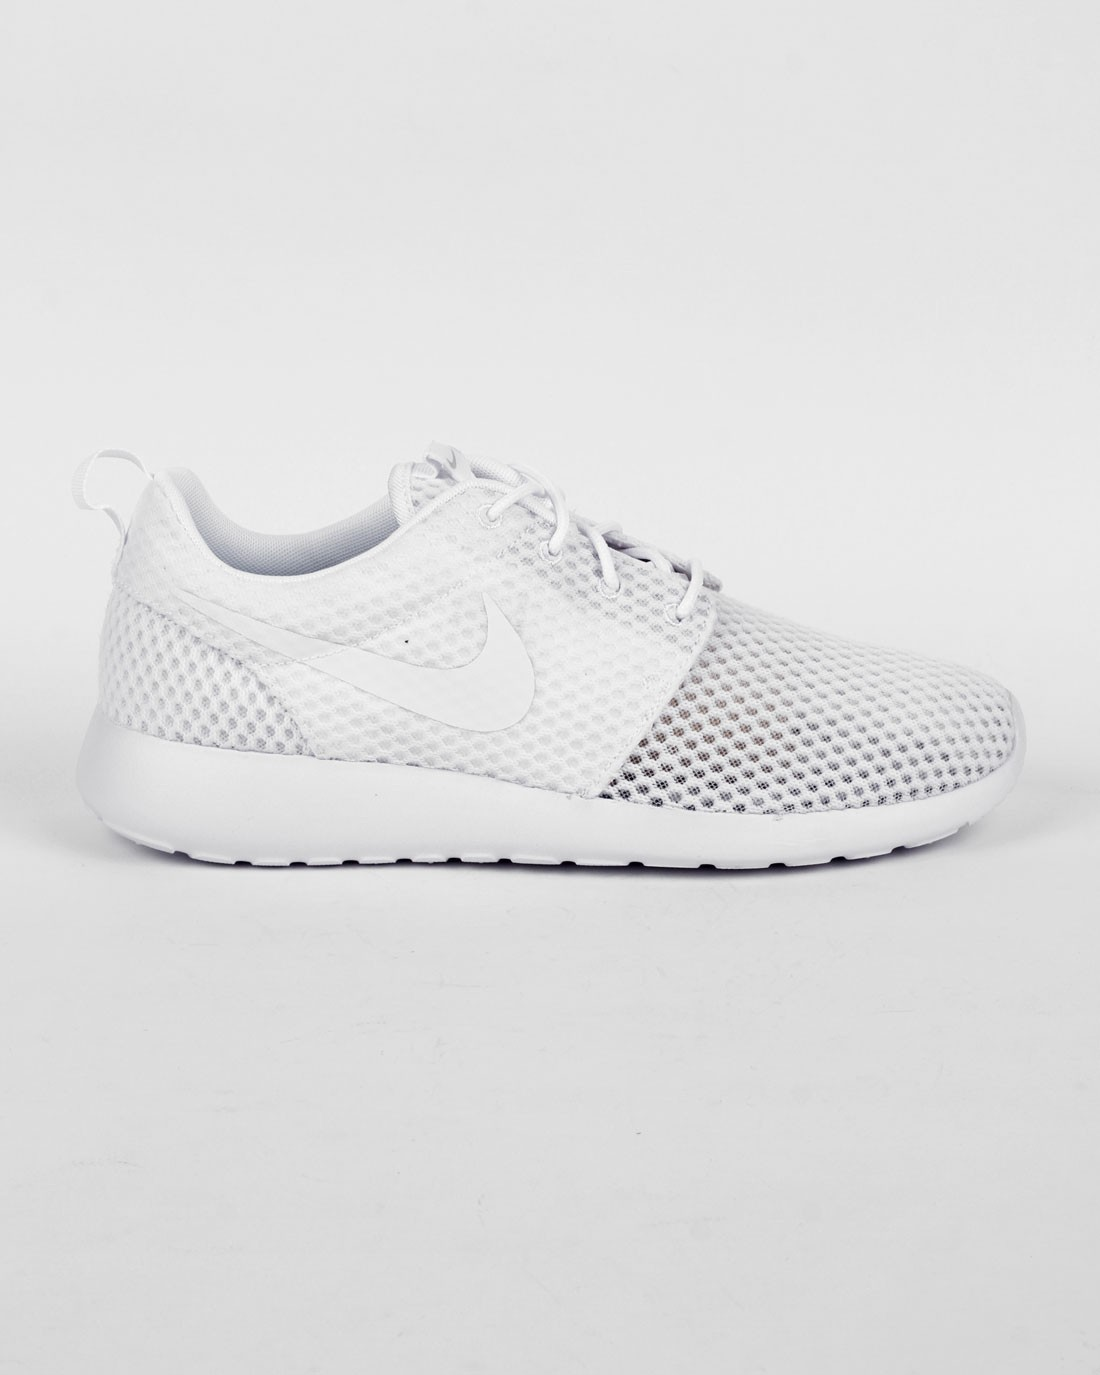 "Nike Roshe One BR (Breeze) ""Monochrome Pack"" Femme Chaussures De Sport Maille Blanche/Tout Blanche/Voile Blanche/Loup Gris 718552-110"